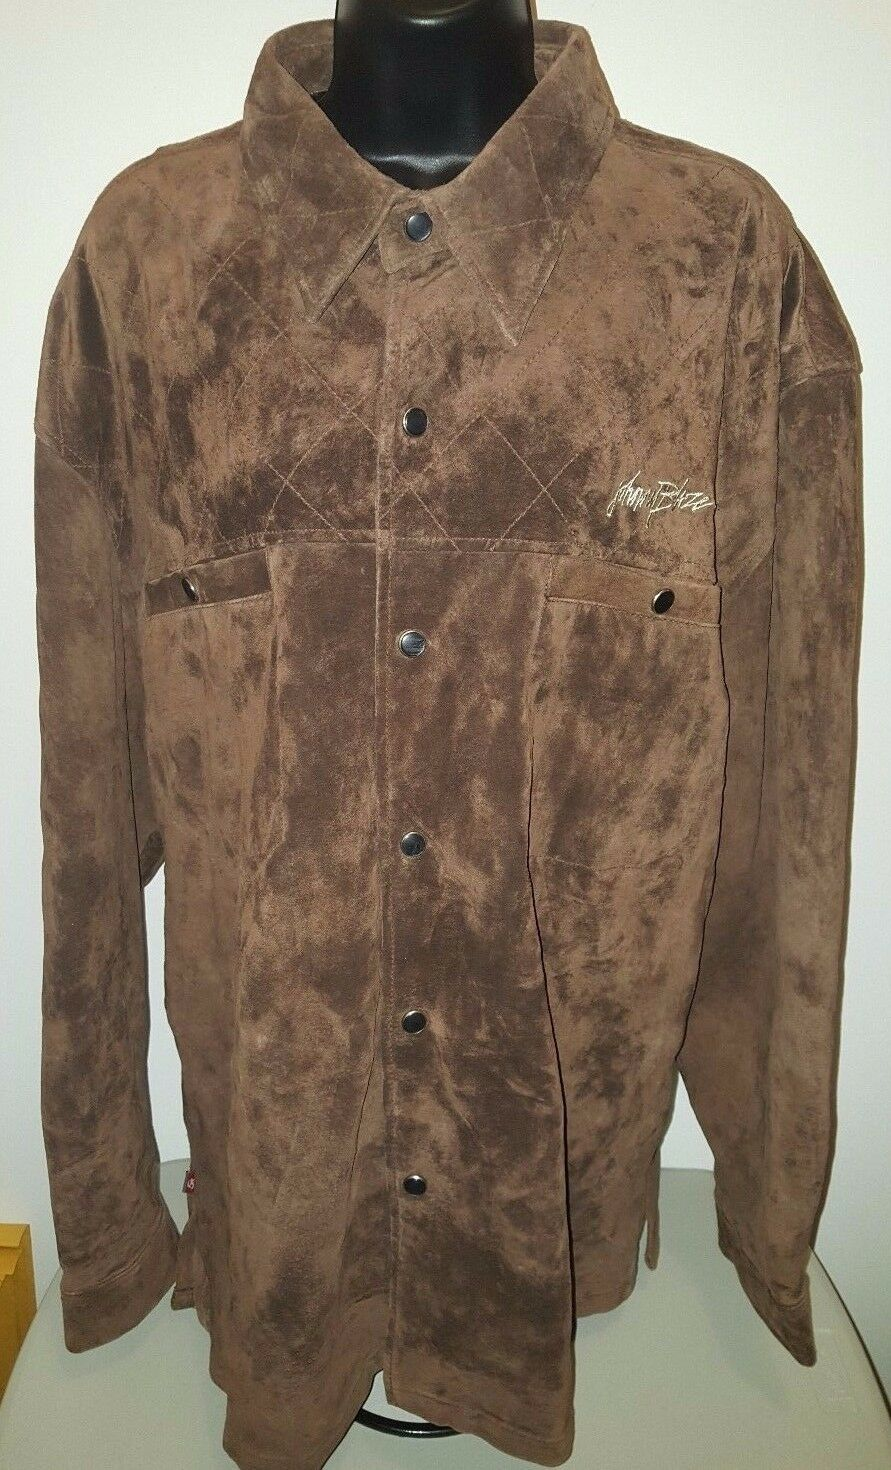 Johnny Blaze Mens braun Suede Snap Front Partial Lined Jacket Coat Größe XXL